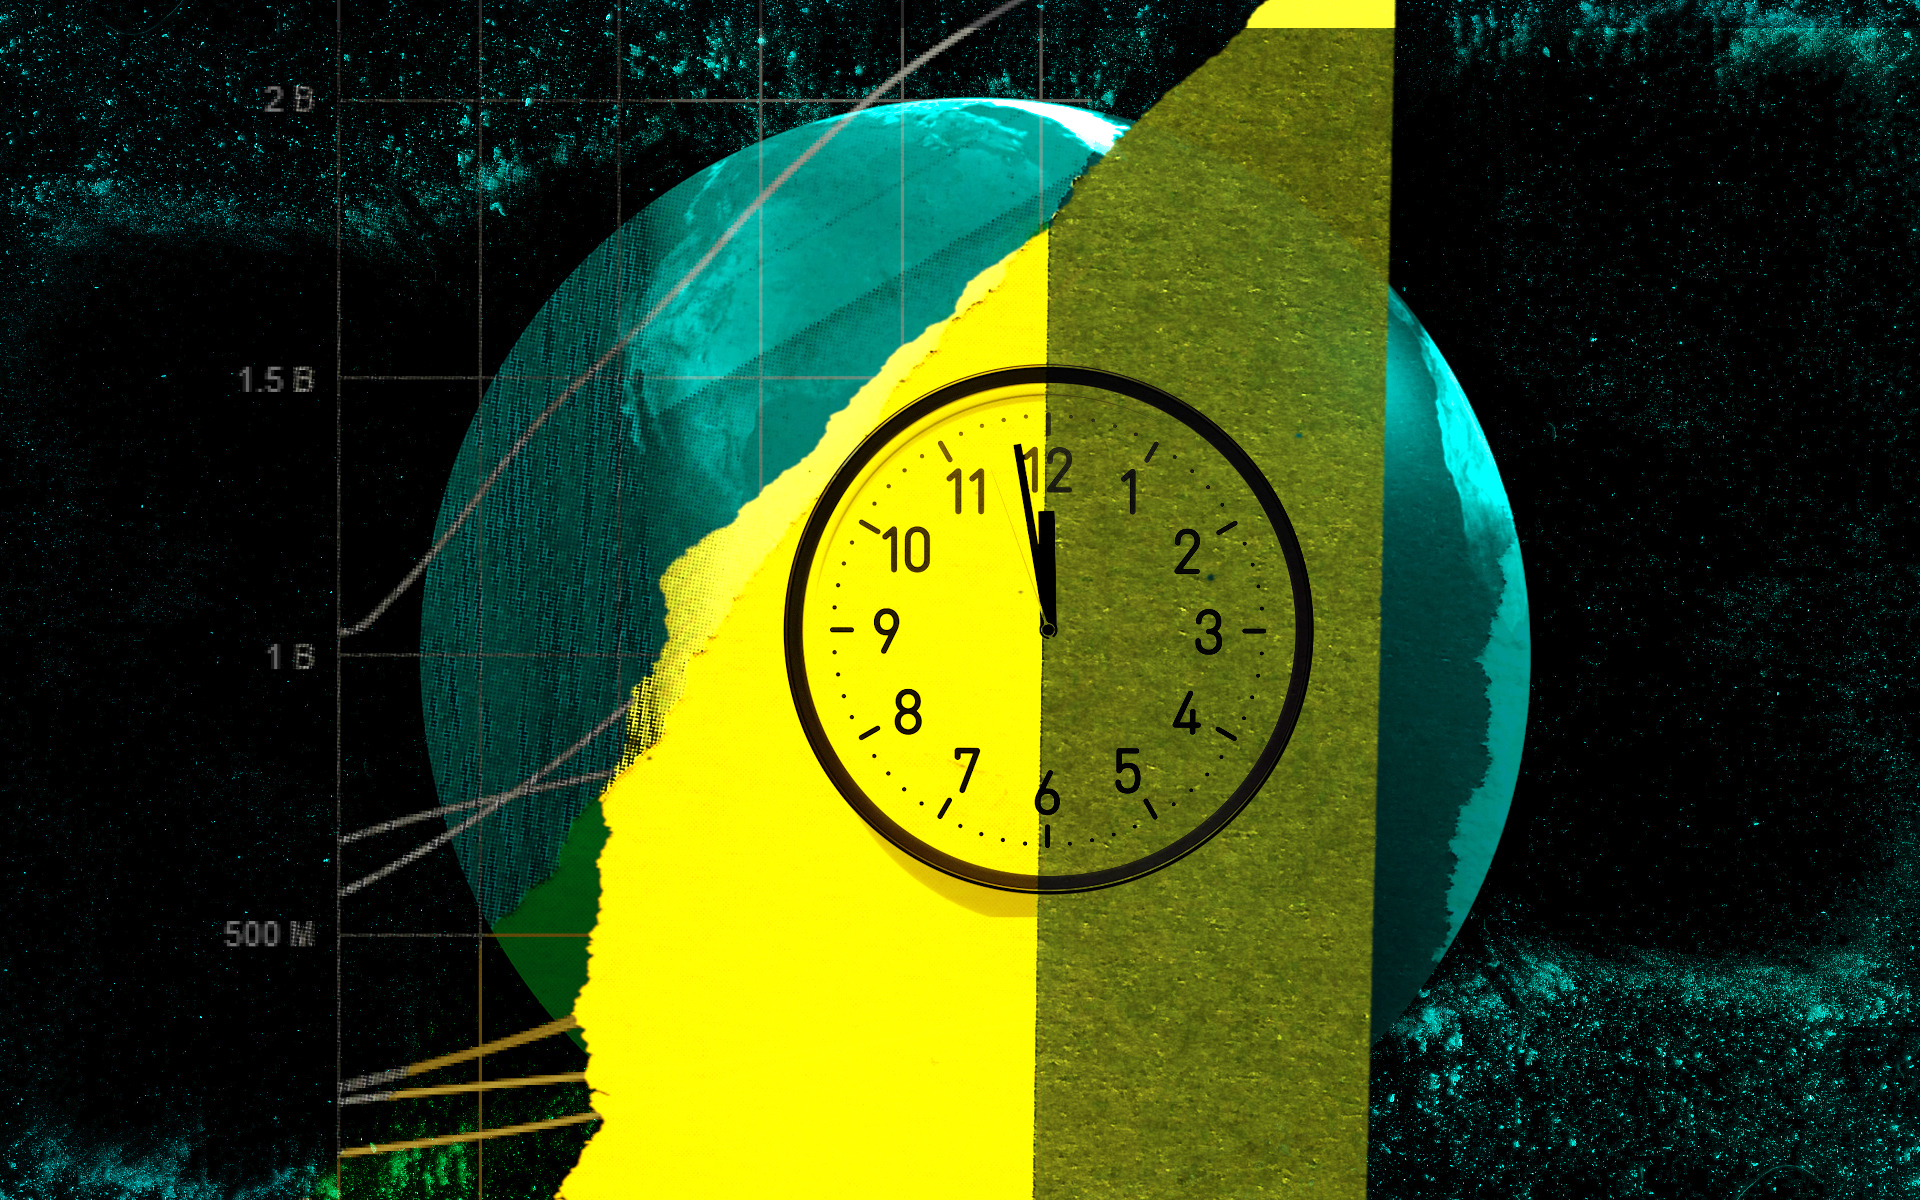 A math equation that predicts the end of humanity